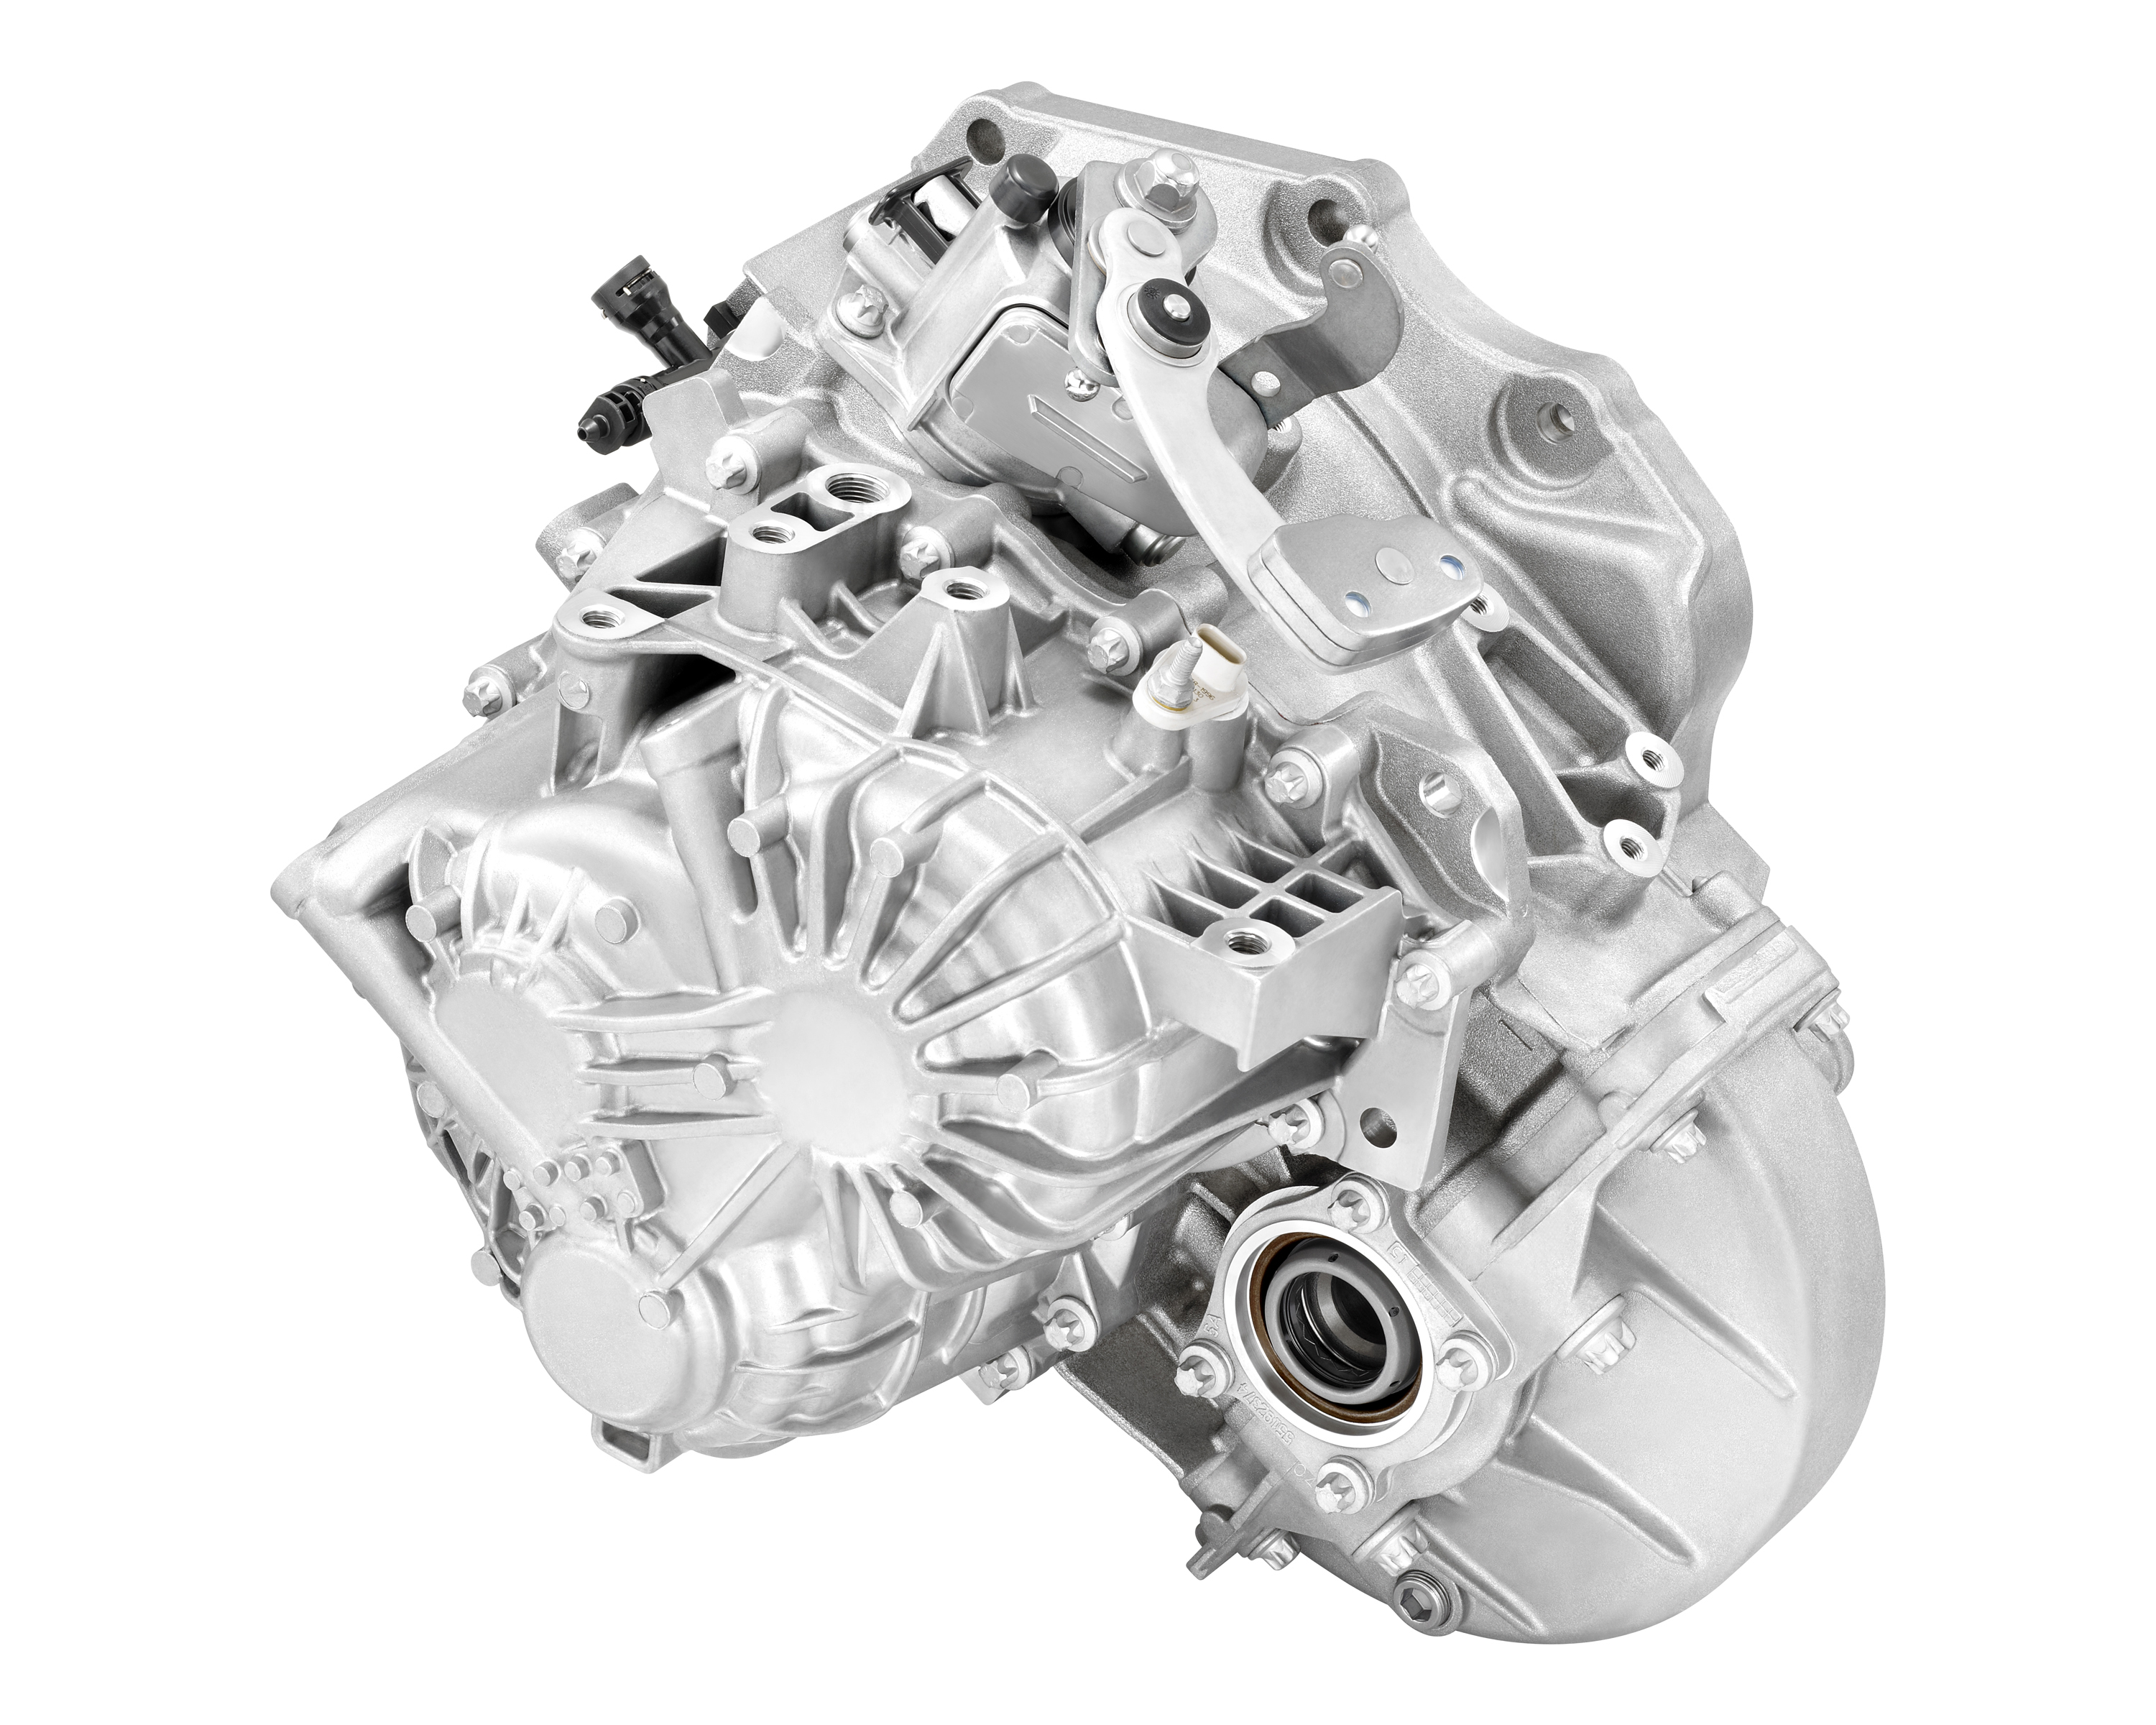 Chevrolet automatic transmission user manuals zjlimited 520 jpg array chevrolet pressroom united states images rh media chevrolet fandeluxe Choice Image